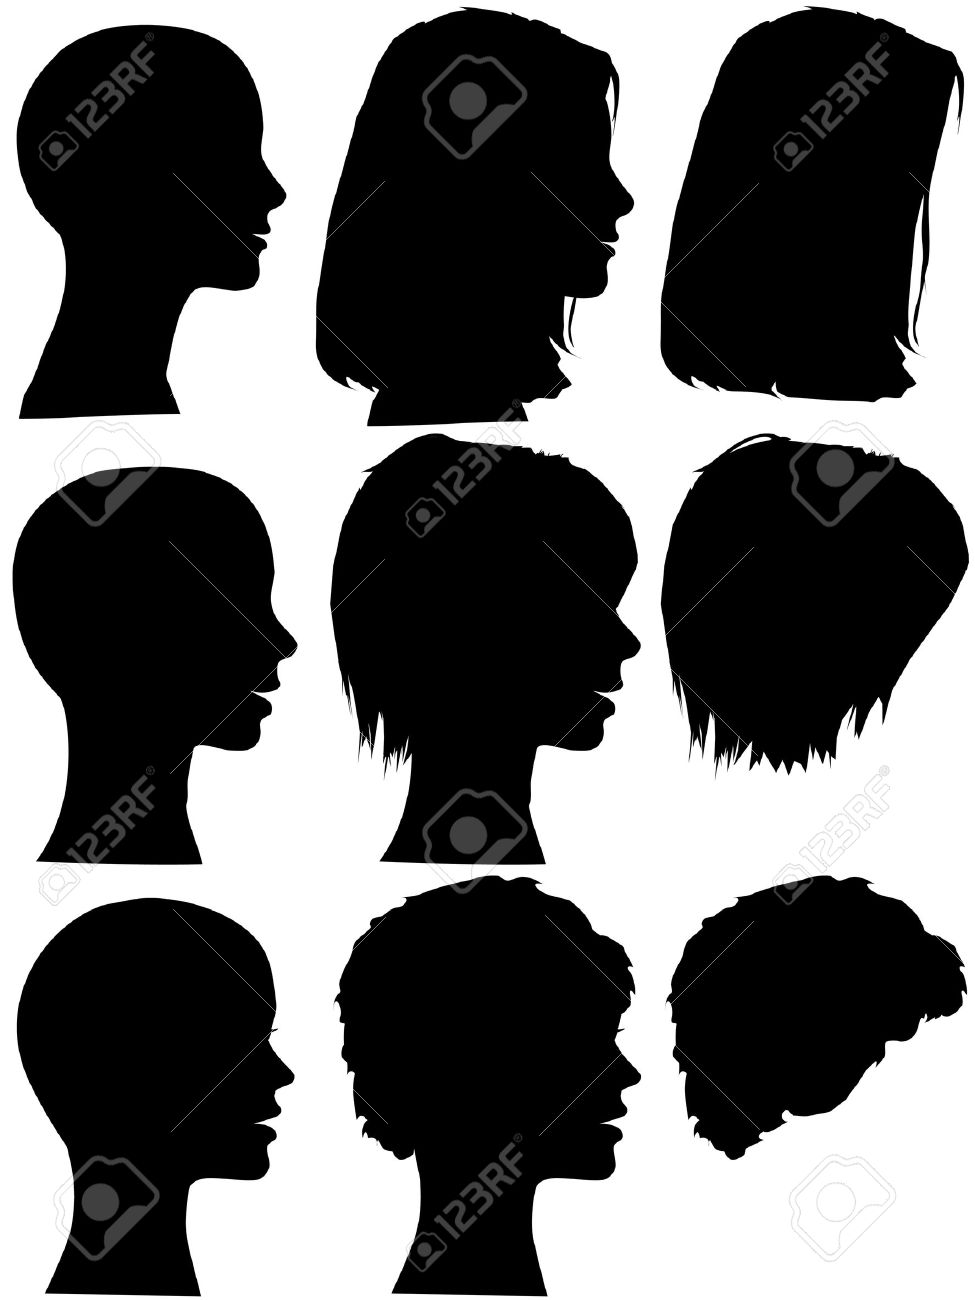 3 profile silhouettes of women & silhouettes of beauty salon hair styles. Long hair, short hair, curly hair. Mix & match the element, each is on its own layer. Stock Vector - 3002352